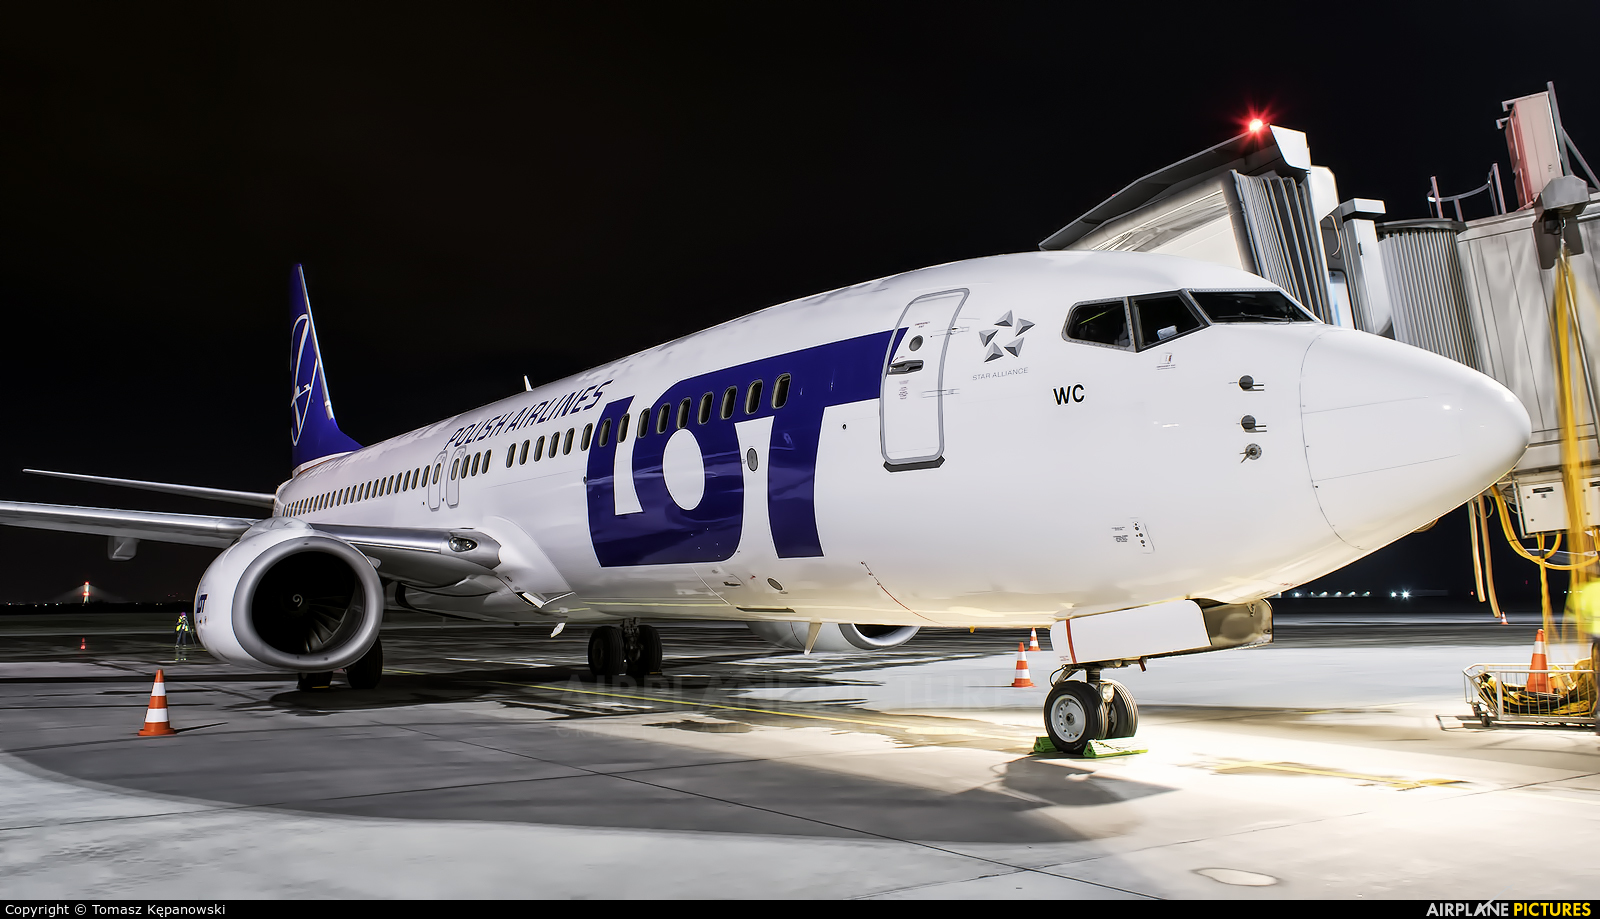 LOT - Polish Airlines SP-LWC aircraft at Rzeszów-Jasionka